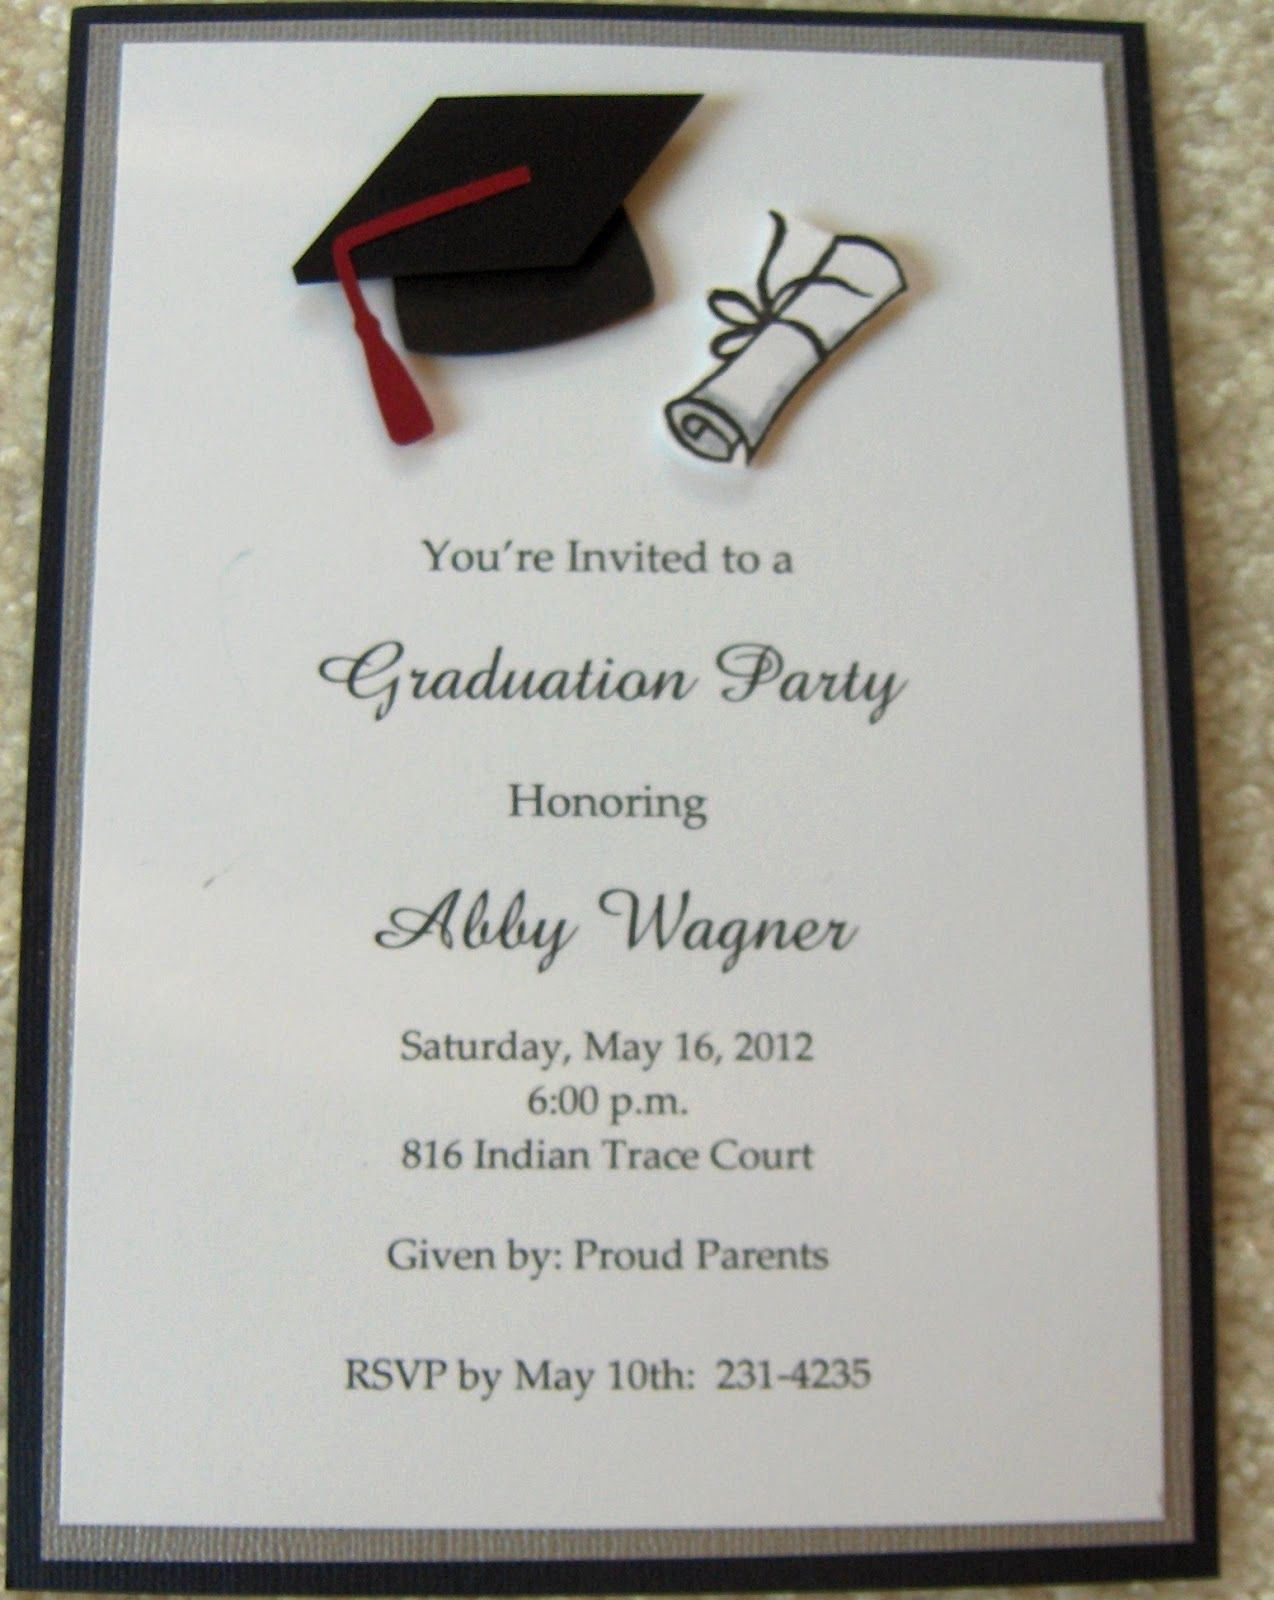 Graduation Invitation Cards Samples Luxury Graduation Invitations Google Search